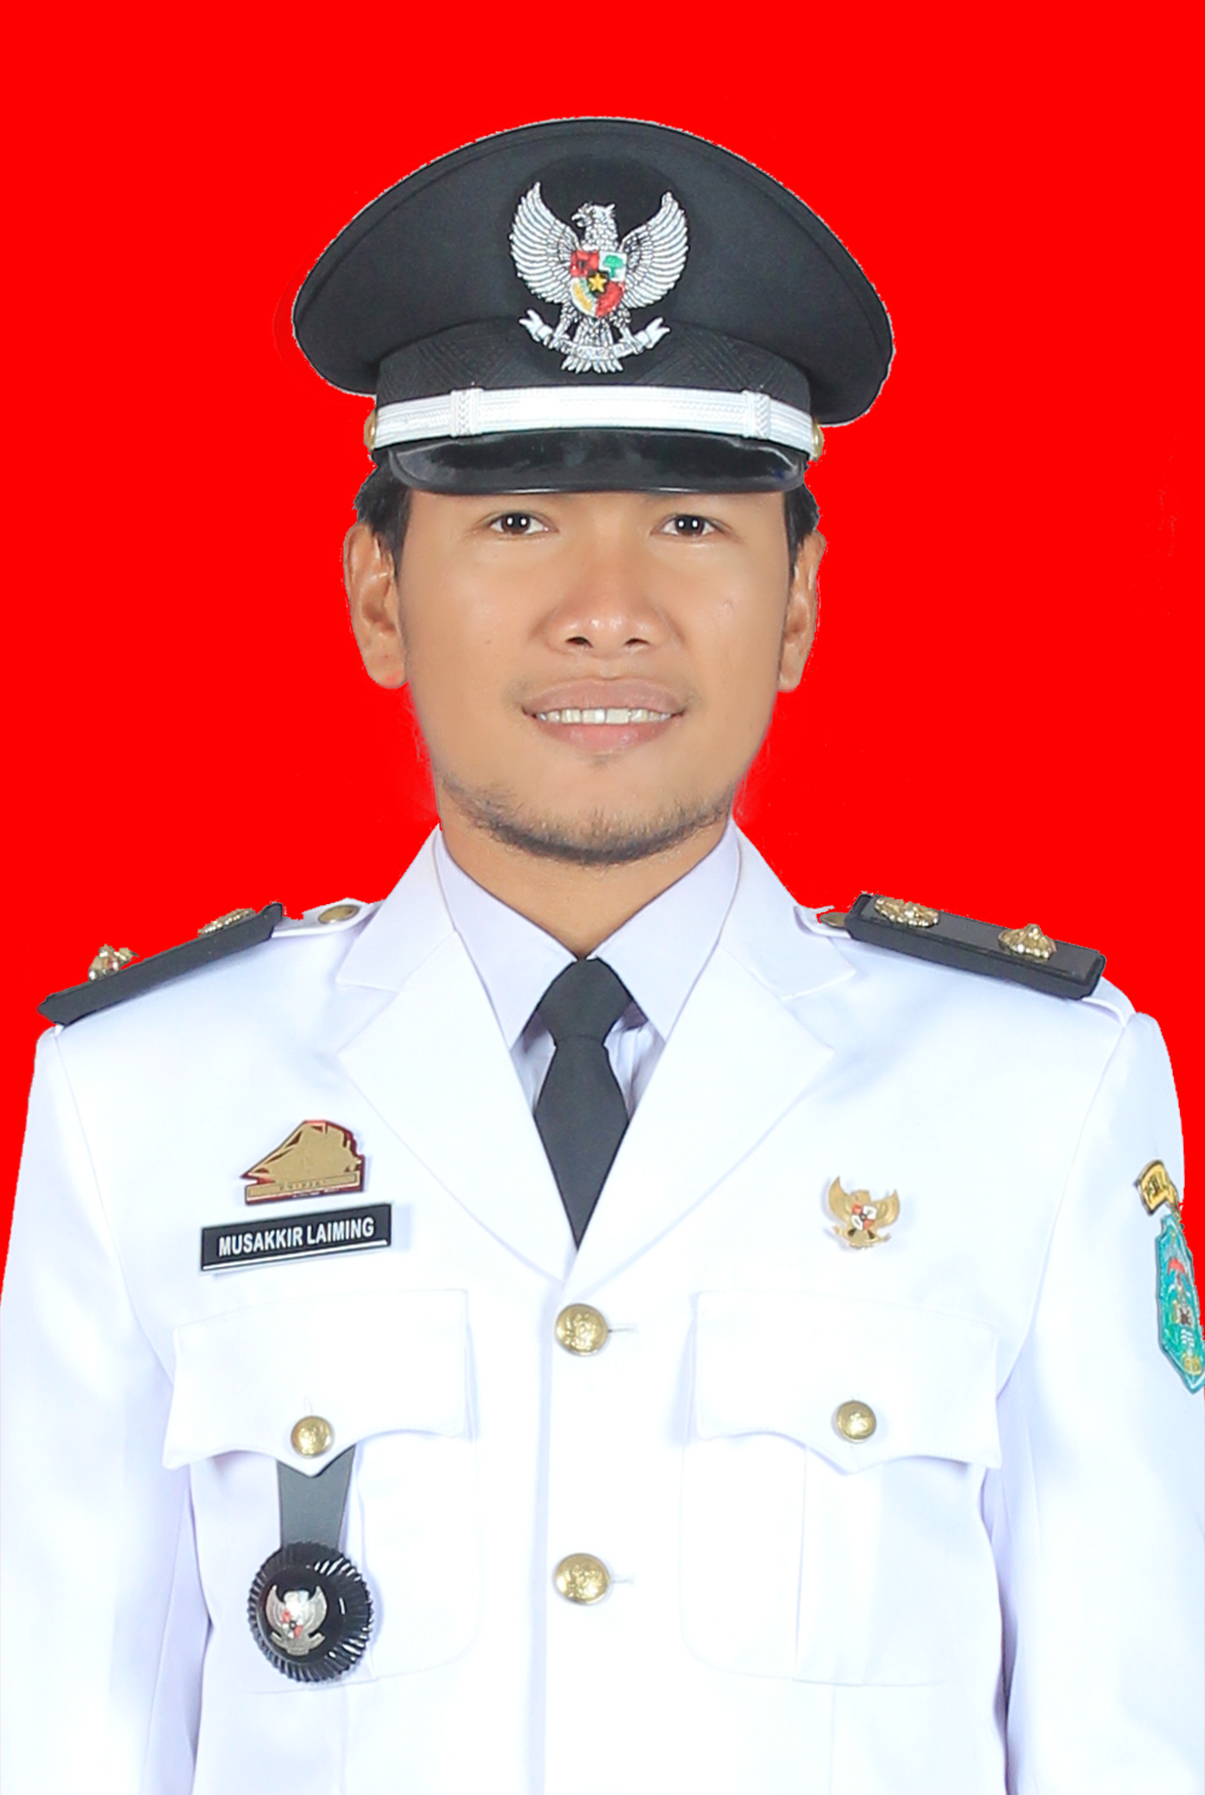 MUSAKKIR LAIMING